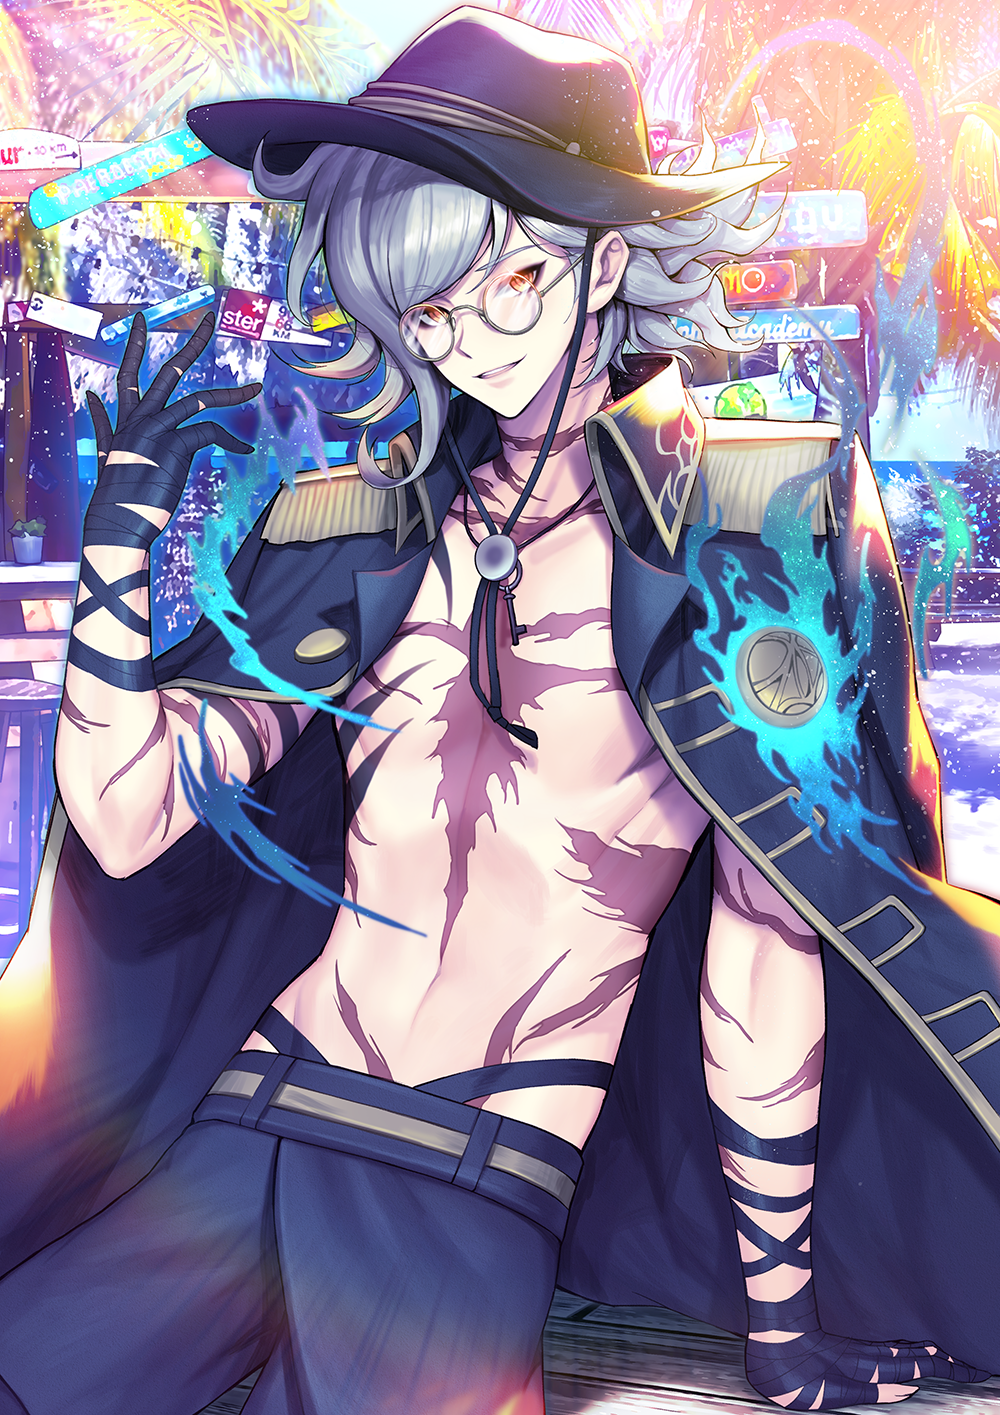 1boy bandaged_hand black_jacket chest_tattoo commentary_request edmond_dantes_(fate/grand_order) energy fate/grand_order fate_(series) fedora glasses hat highres jacket jewelry key key_necklace kyundoo long_hair looking_at_viewer male_focus necklace red_eyes sign smile tattoo wavy_hair white_hair yellow_eyes